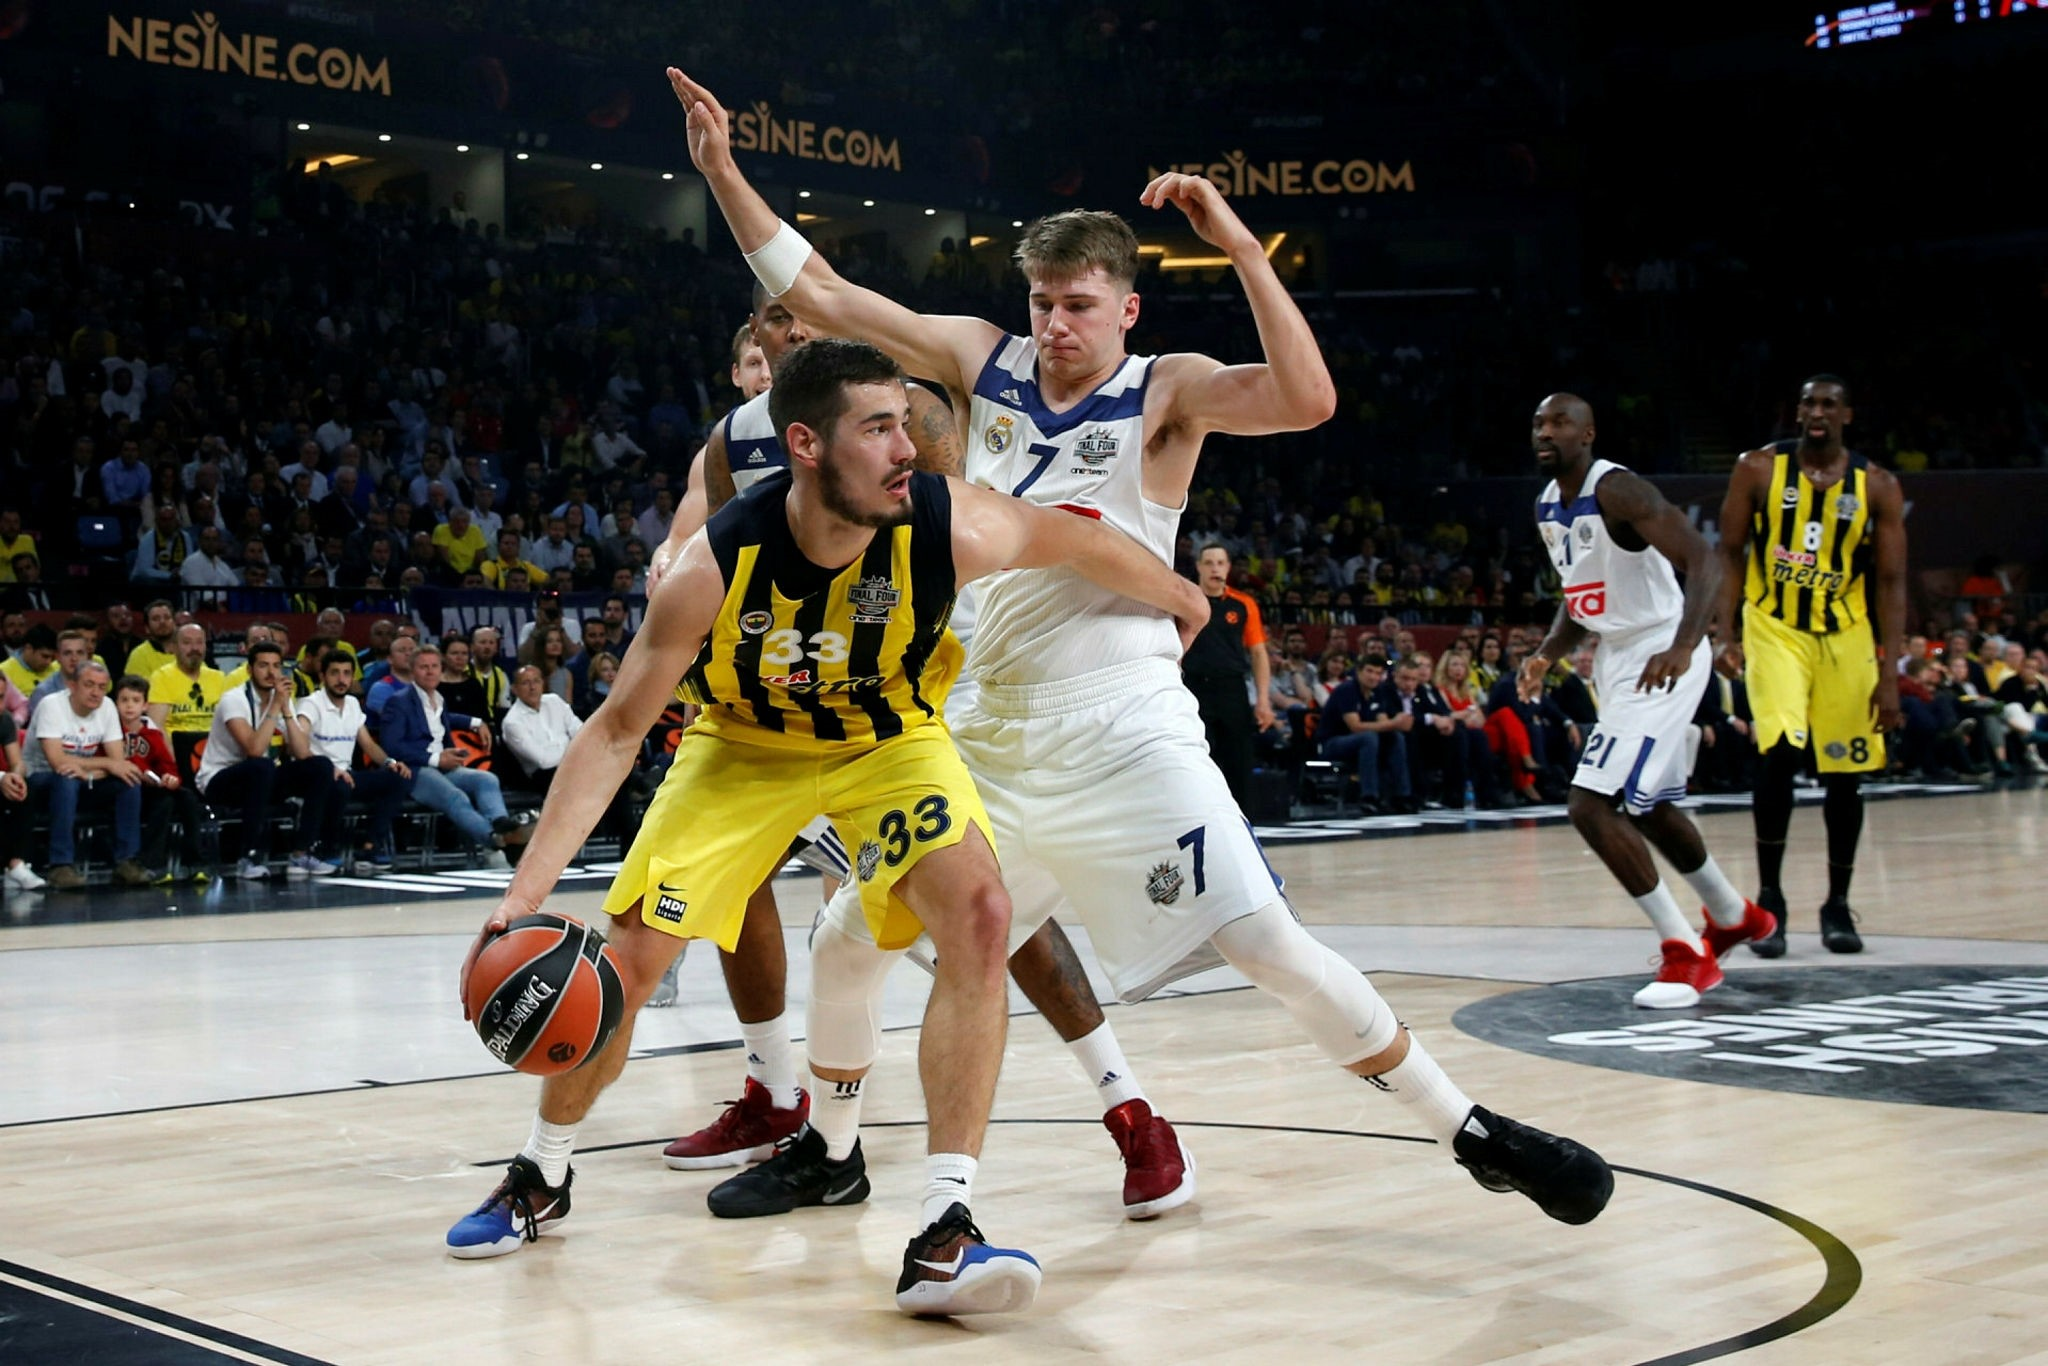 Real Madrid's Luka Doncic, right, defends against Fenerbahu00e7e's Bogdan Bogdanovic during their Final Four Euroleague semifinal basketball match at Sinan Erdem Dome in Istanbul, Friday, May 19, 2017. (AP Photo)